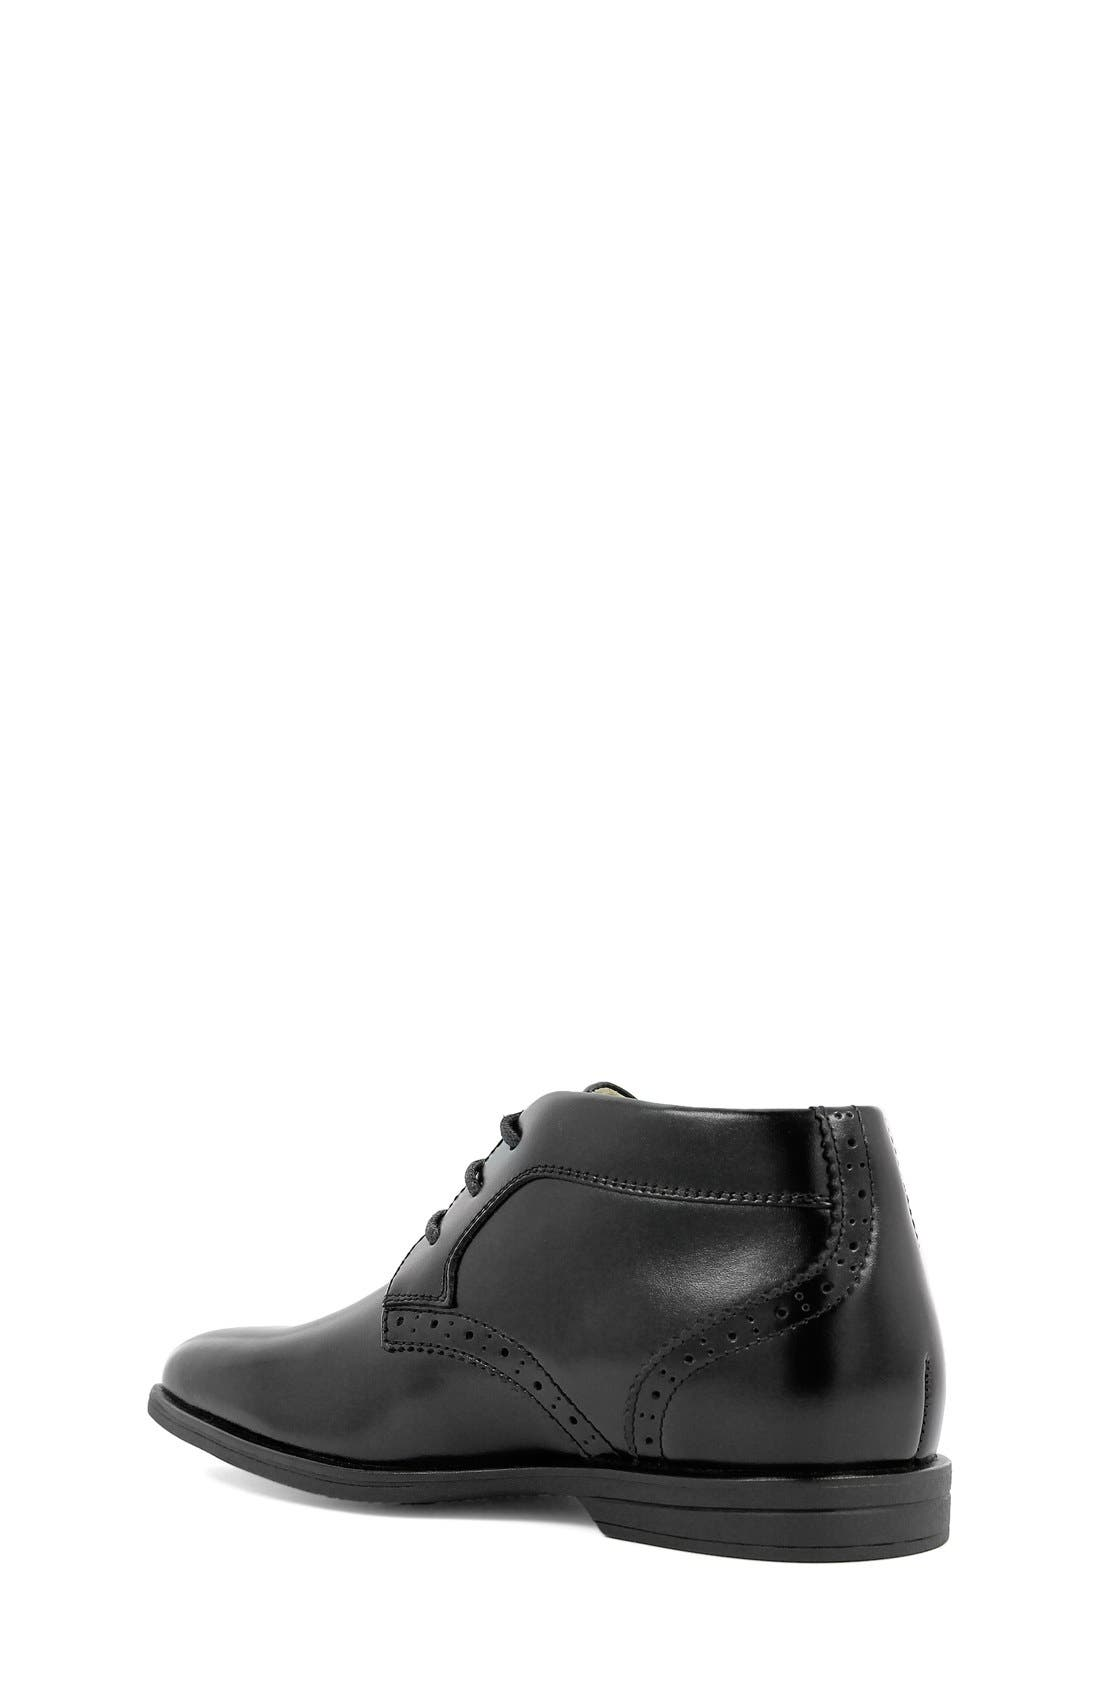 'Reveal' Chukka Boot,                             Alternate thumbnail 4, color,                             BLACK LEATHER